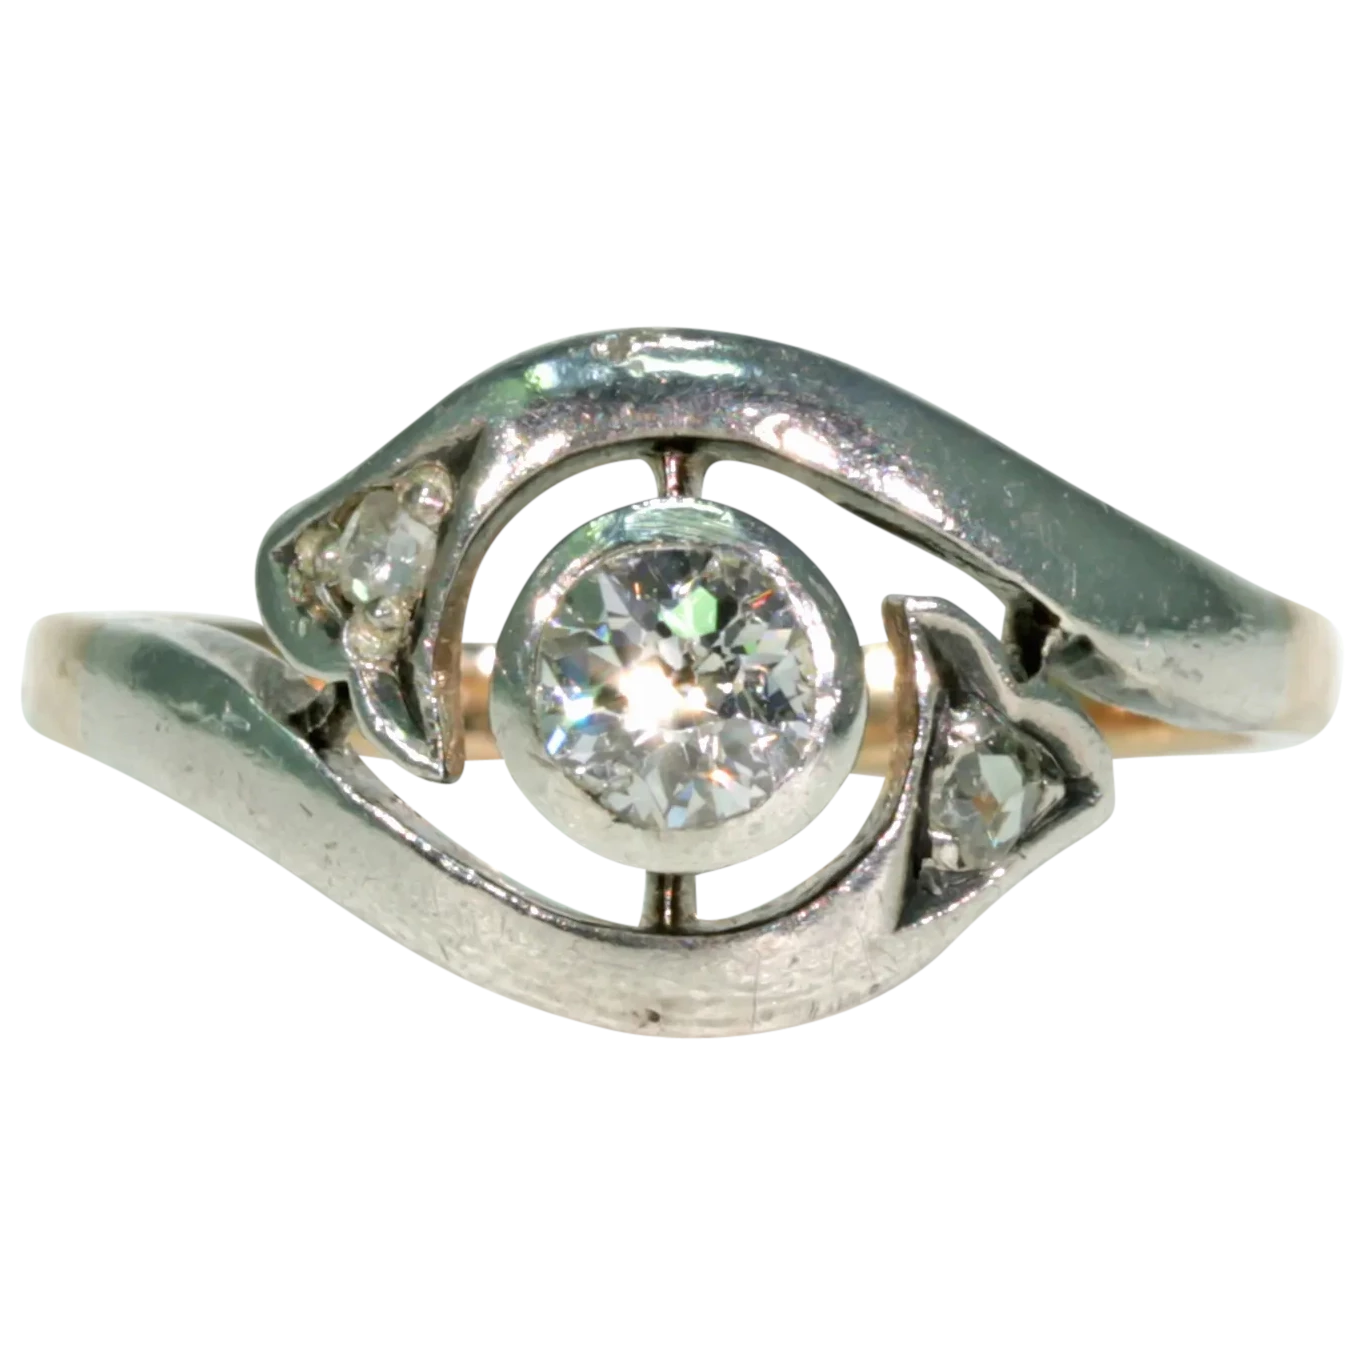 Art Nouveau Turbillion Diamond Ring Gold Silver